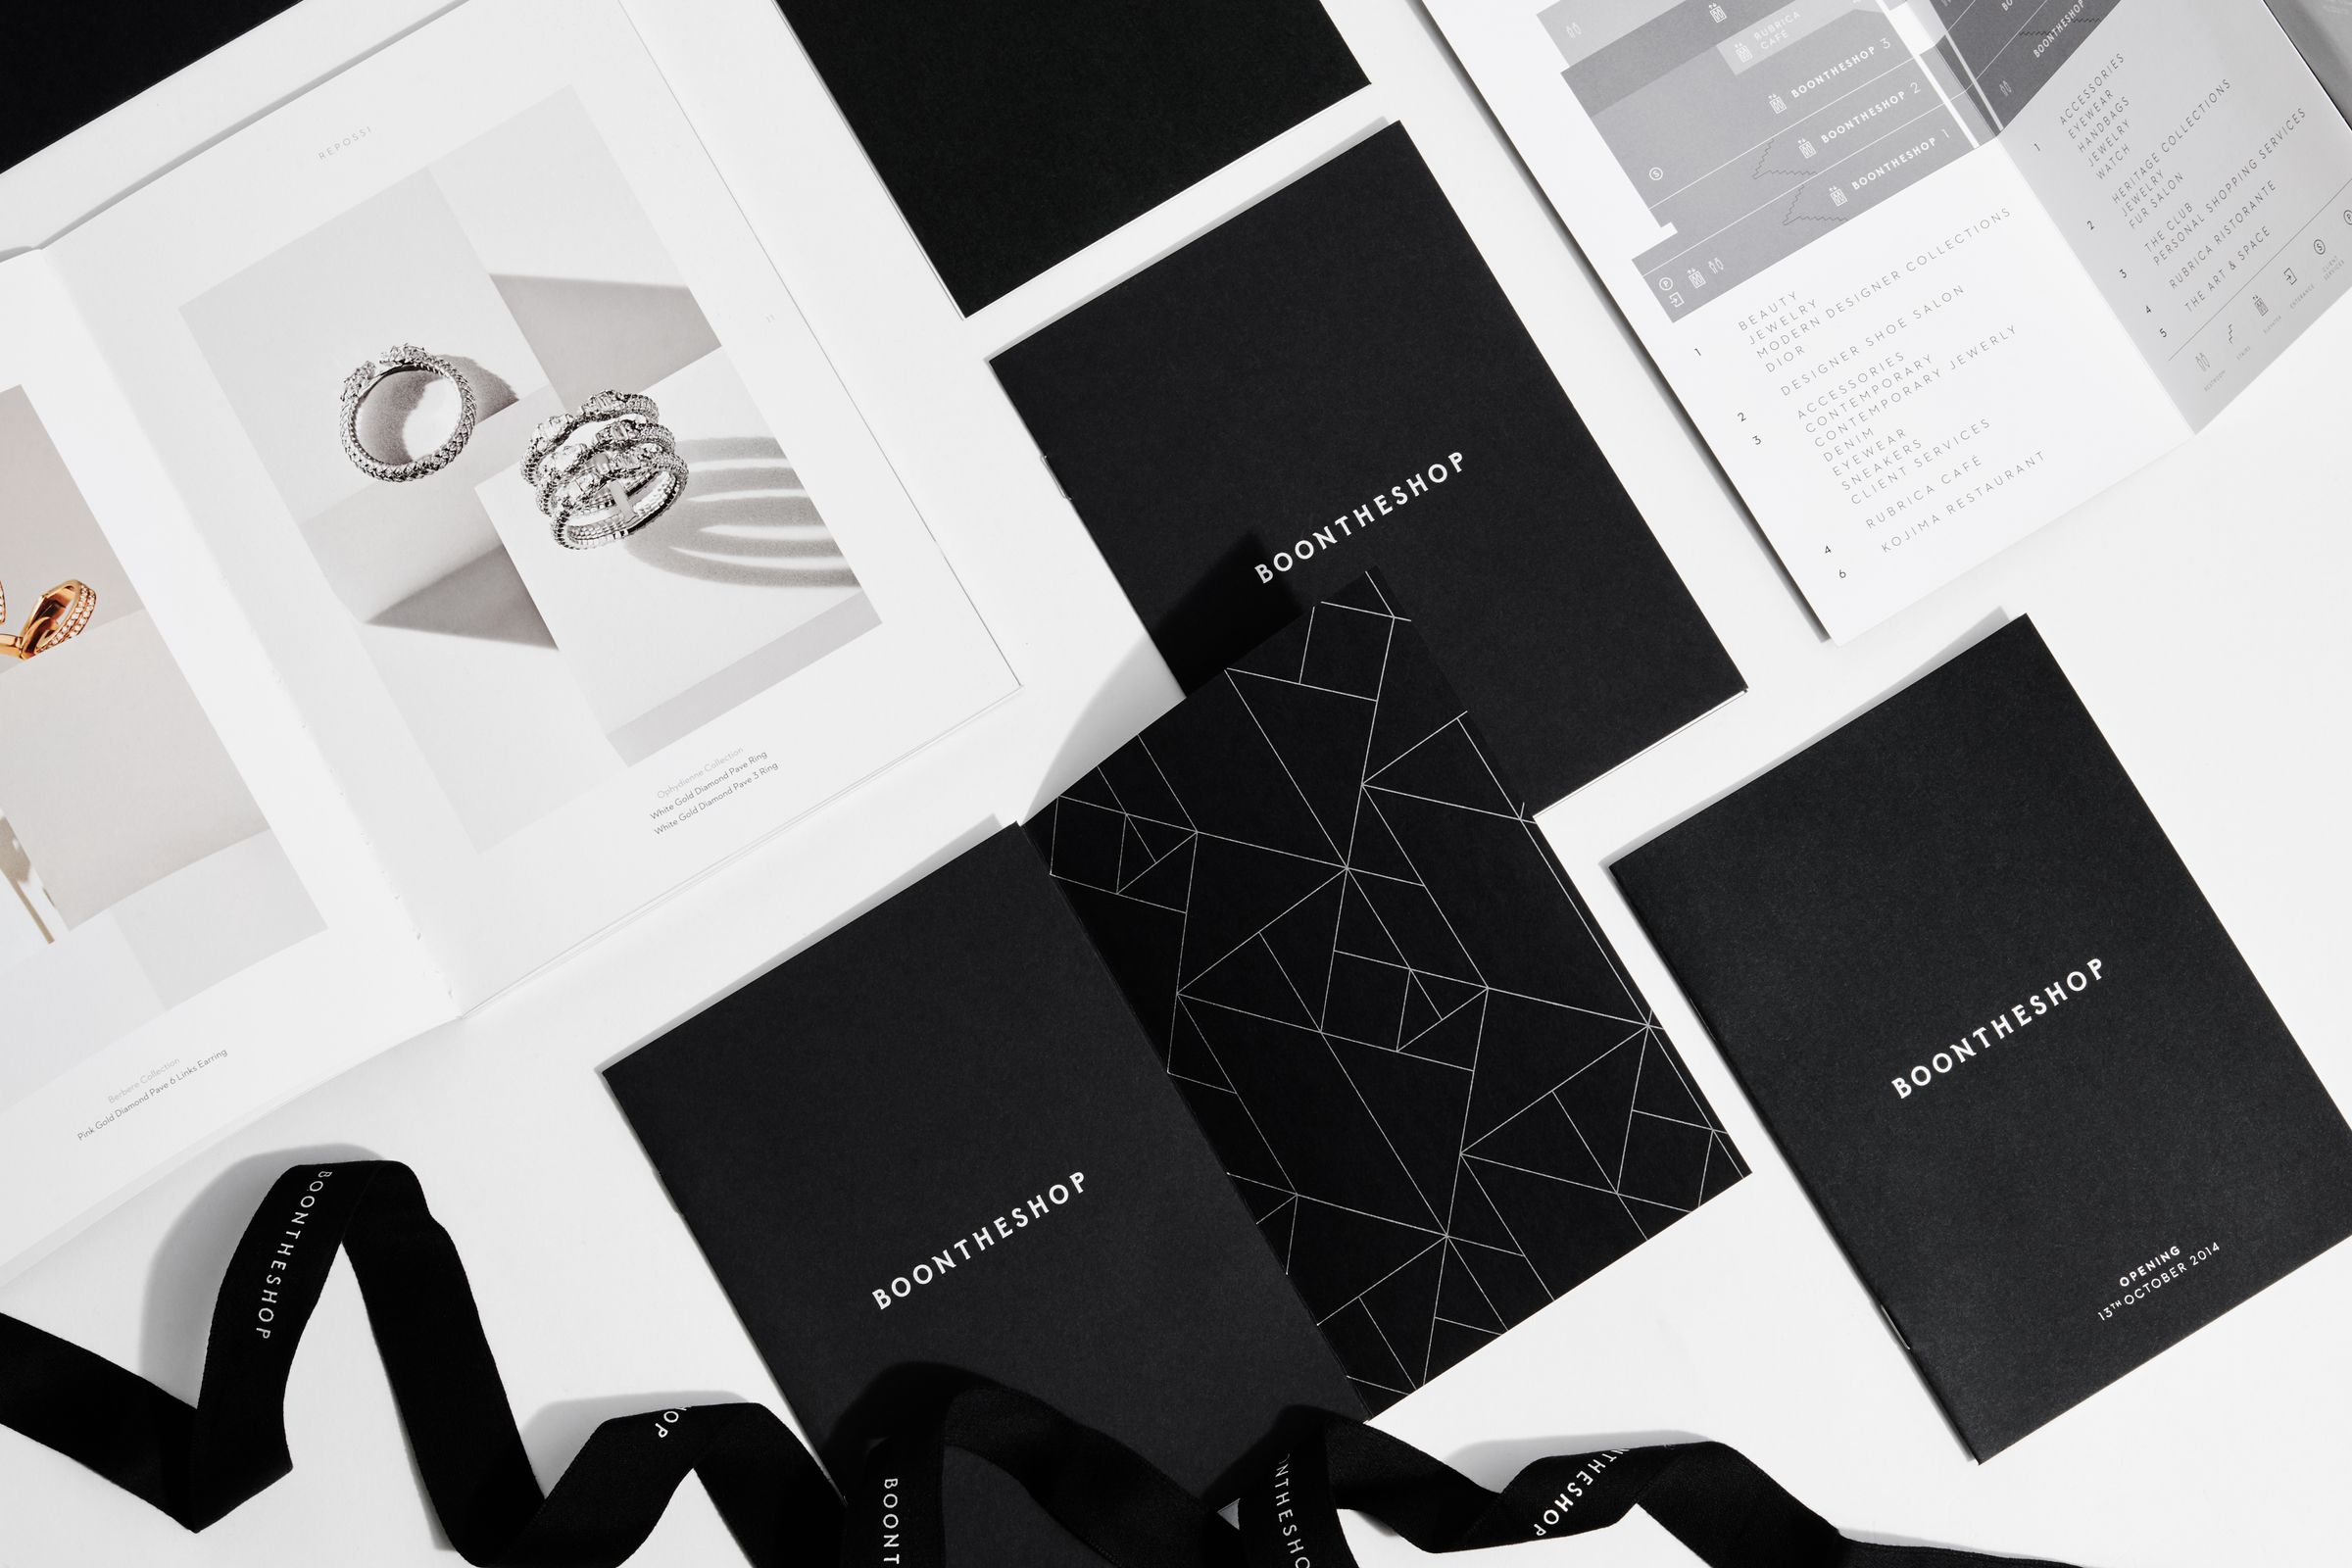 BOONTHESHOP collateral design